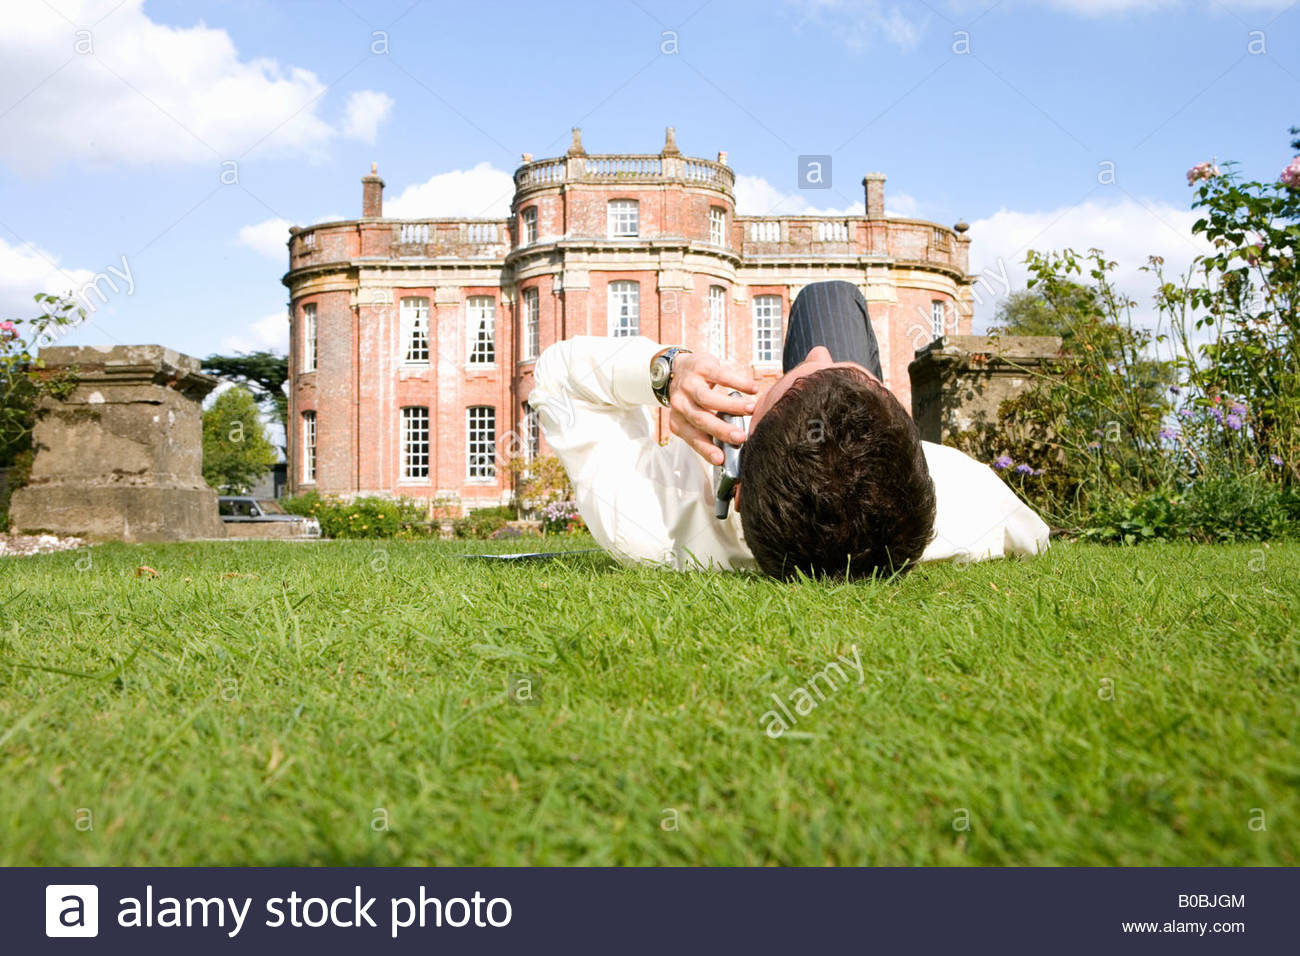 Young man lying on grass using mobile phone by manor house, ground view - Stock Image